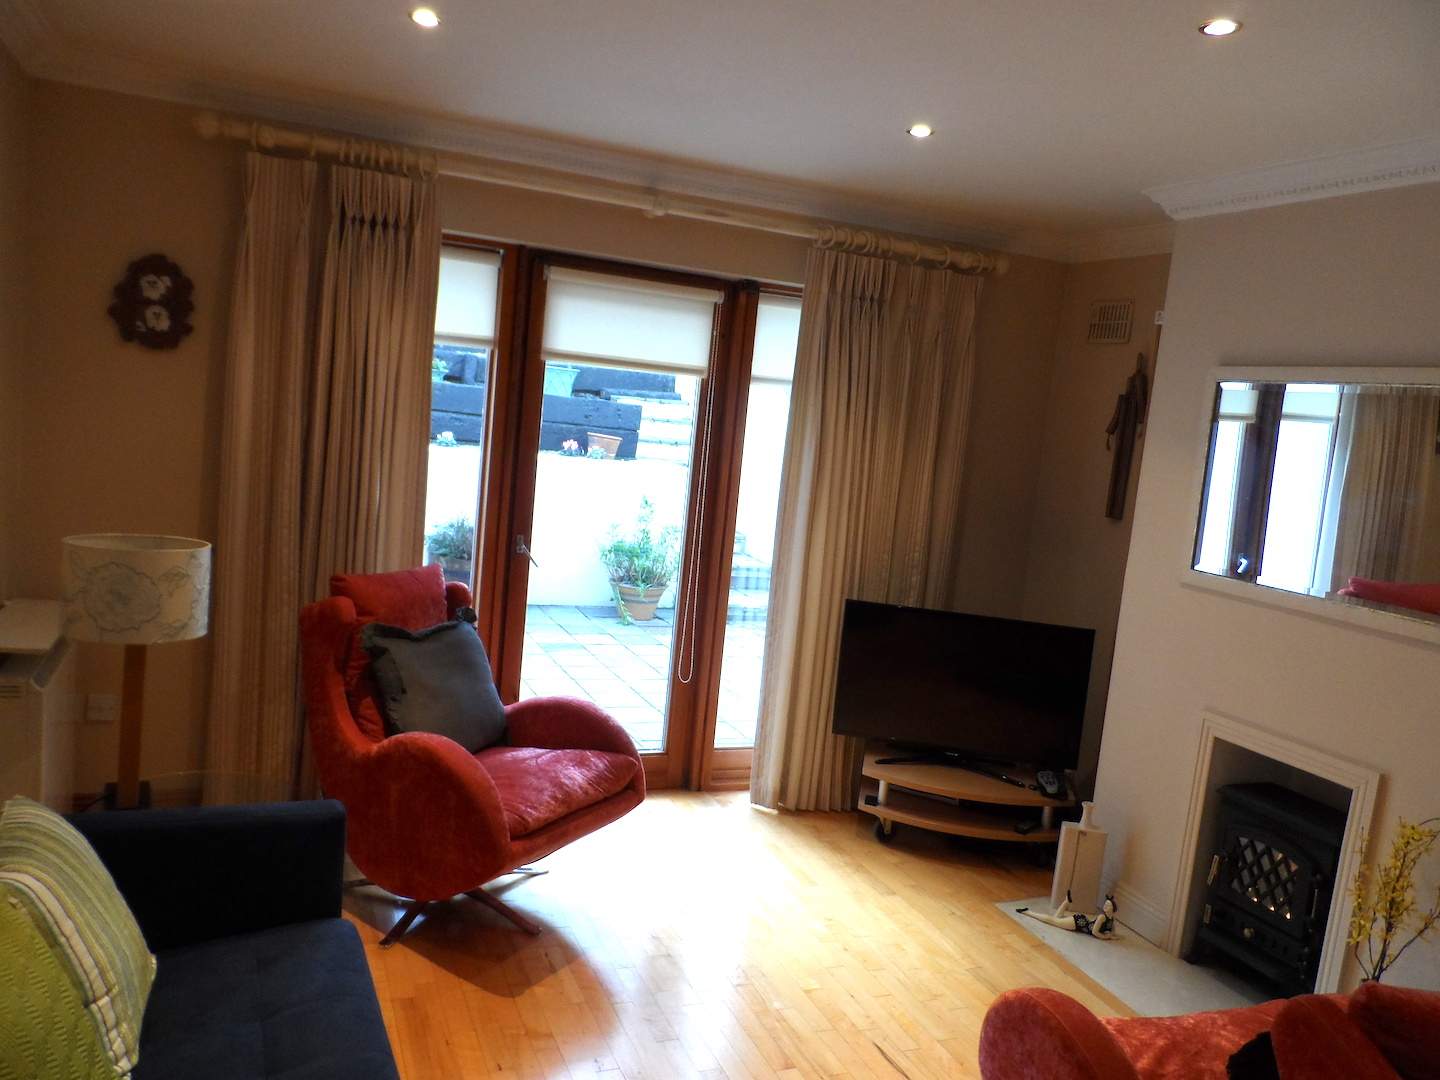 2 to 3 Bedroom House, 5 mins from Dalkey Village & DART